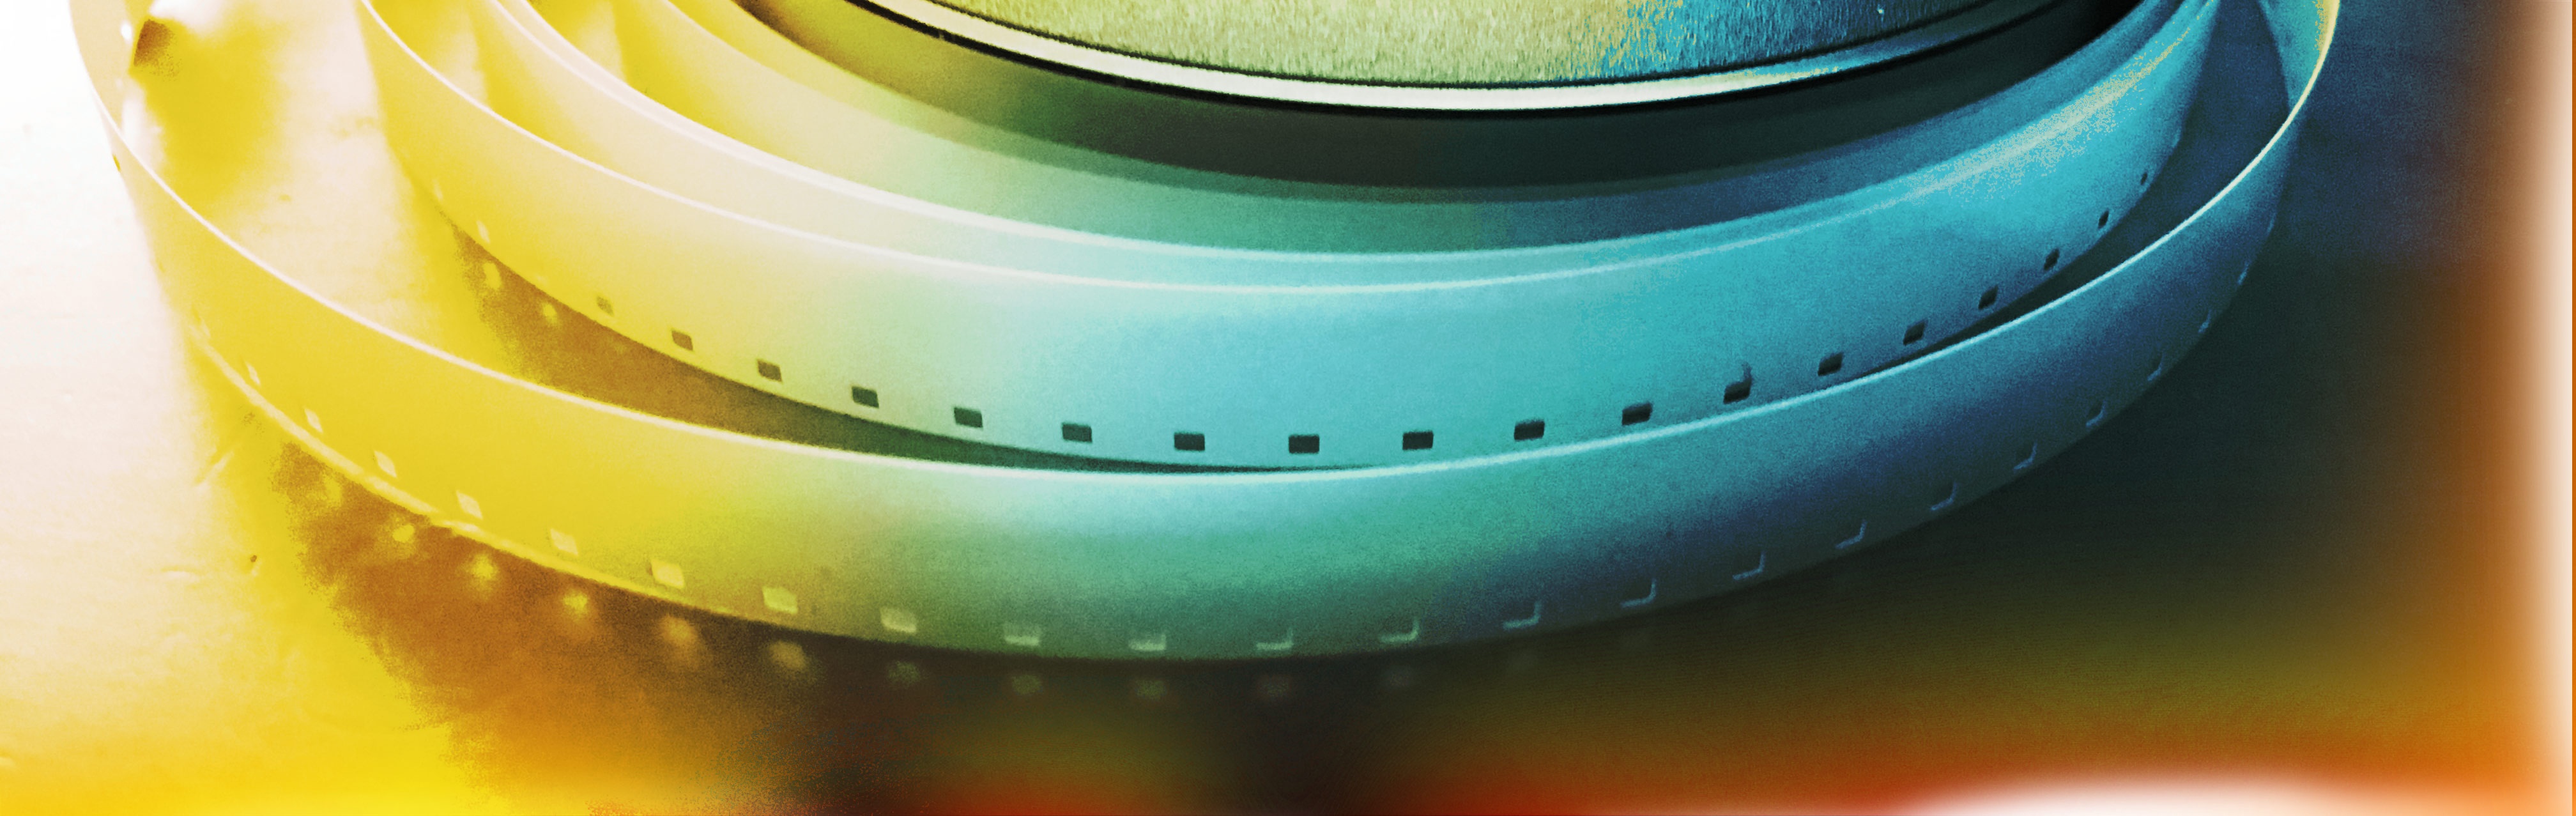 8mm_HD_film_scanning_costs_banner1